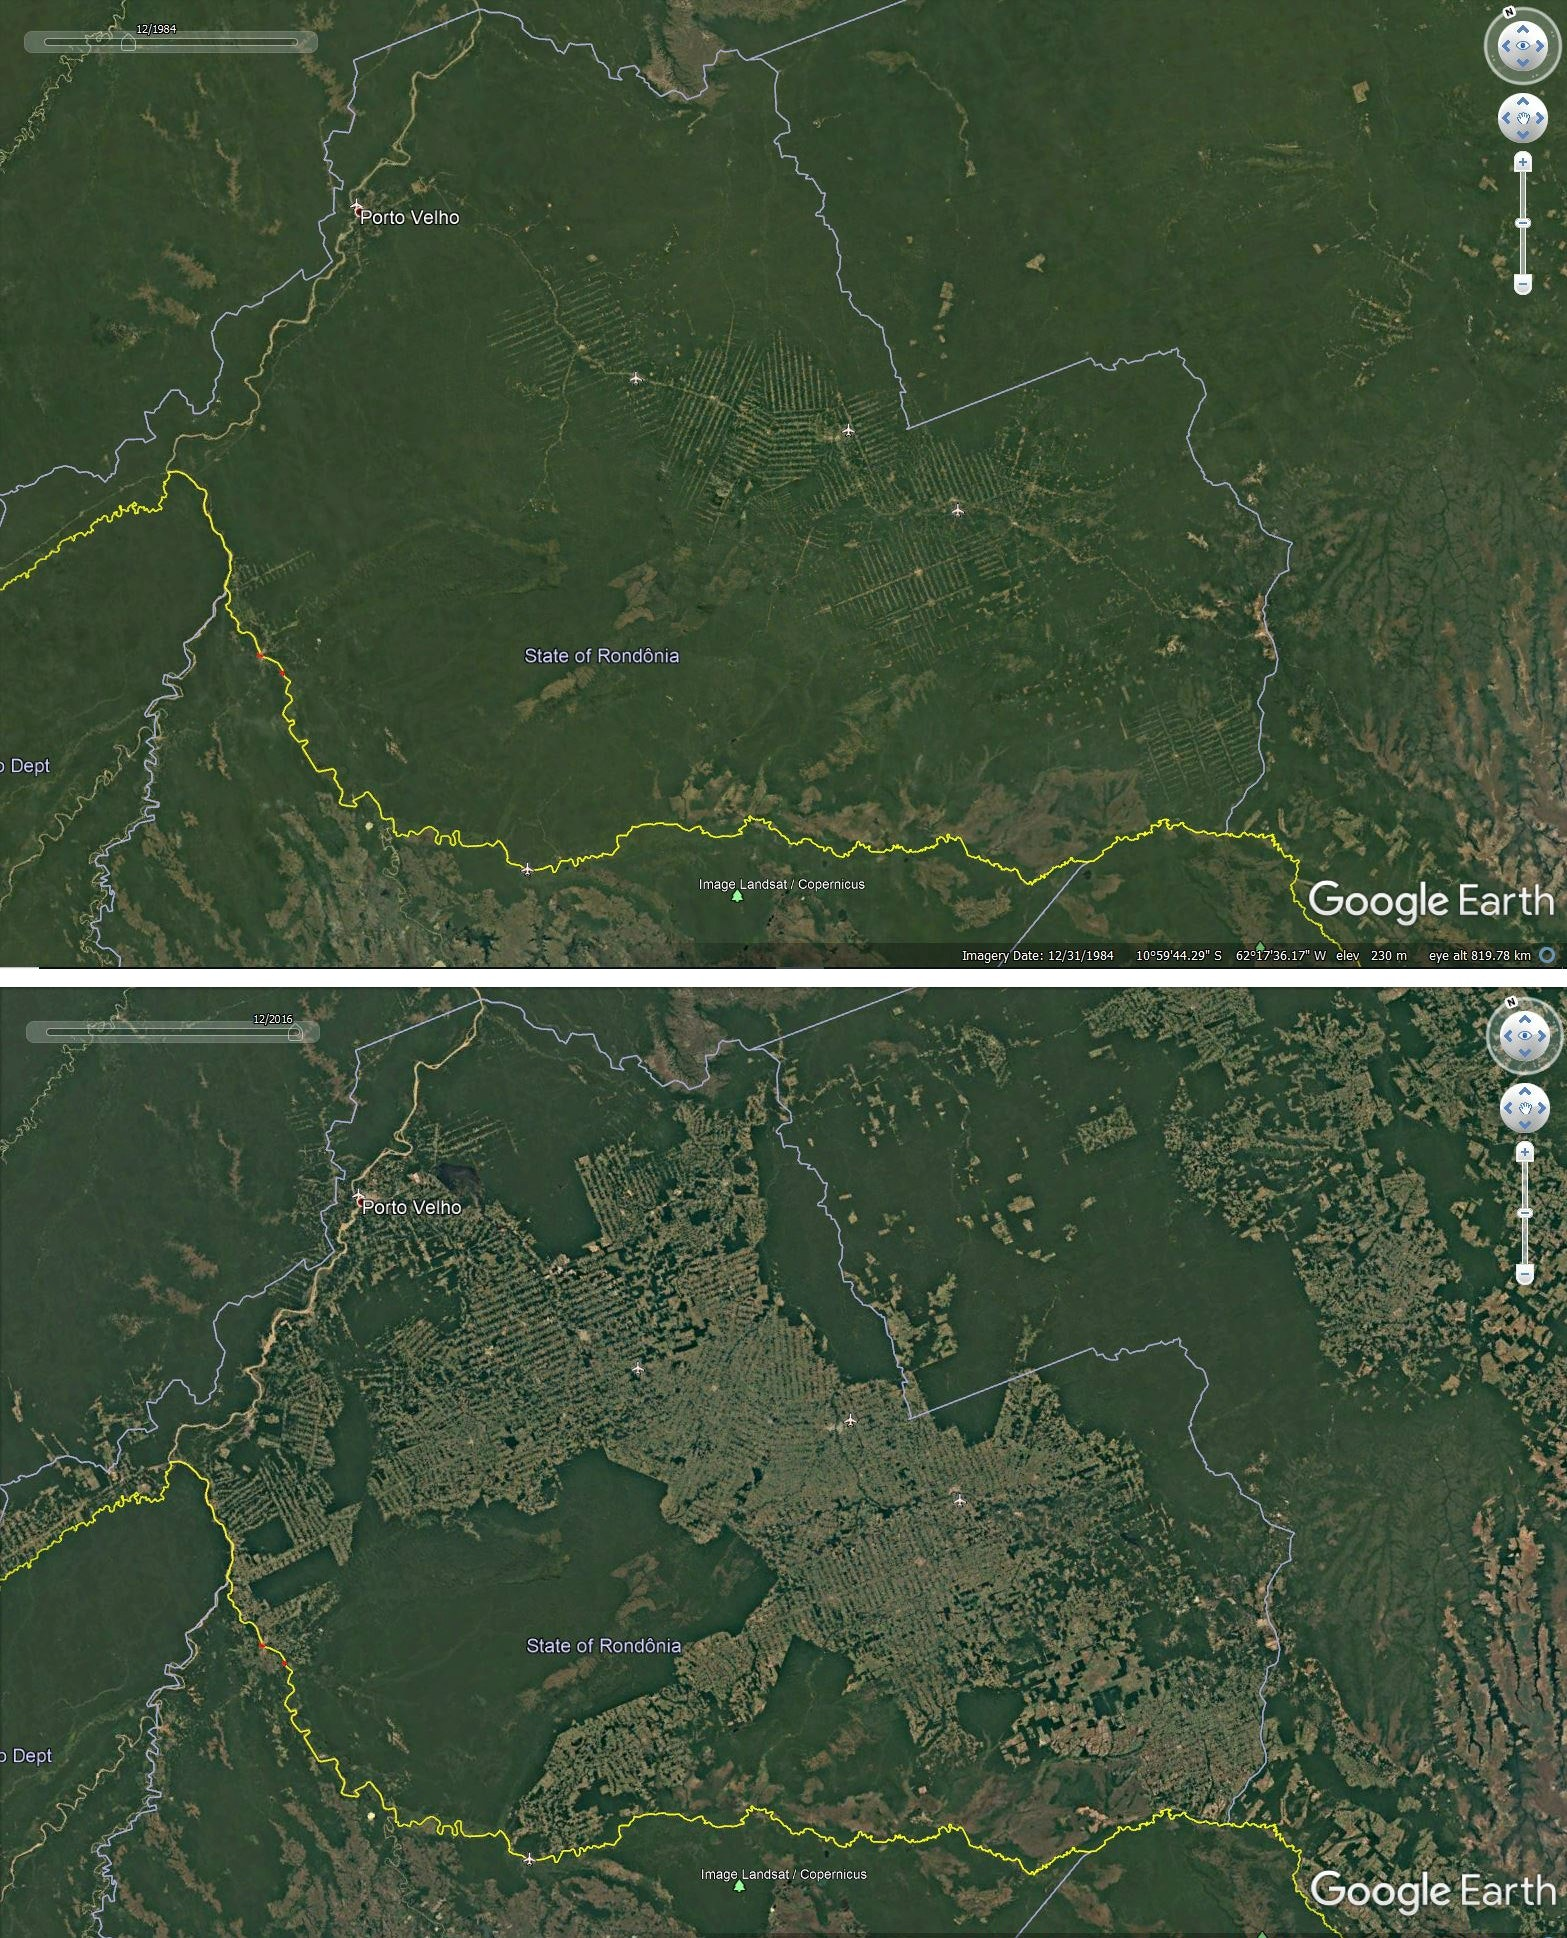 Deforestation around roads in Rondonia, Brazil, 1984-2016.